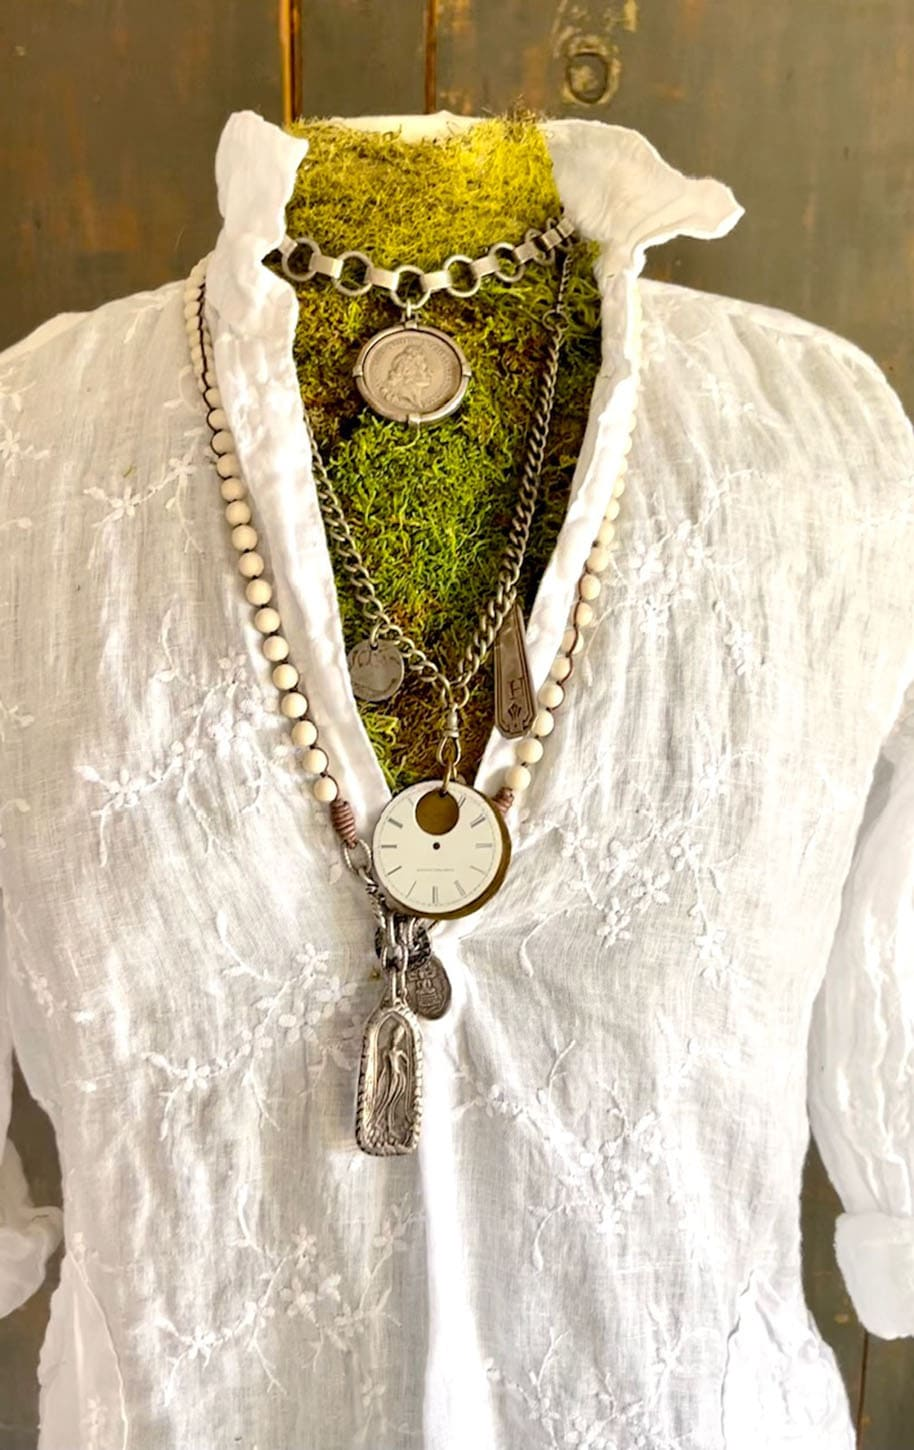 cp shades shirt and necklaces on cindy hattersley's blog